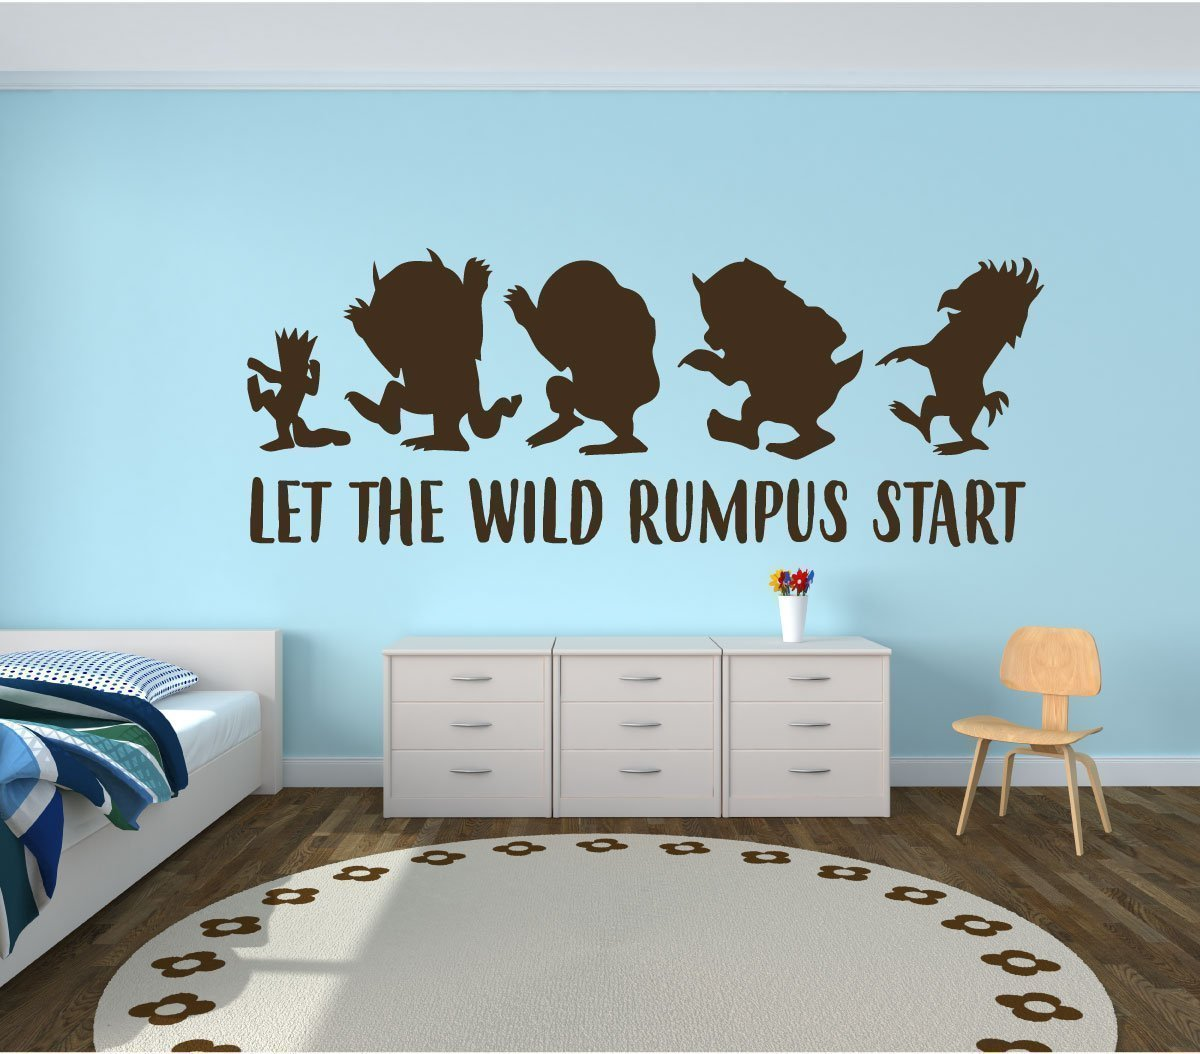 Wall Decal For Kids - Let The Wild Rumpus Start - Where The Wild Things Are Theme Room-Crown Design-Vinyl Wall Art and Decor for Children's